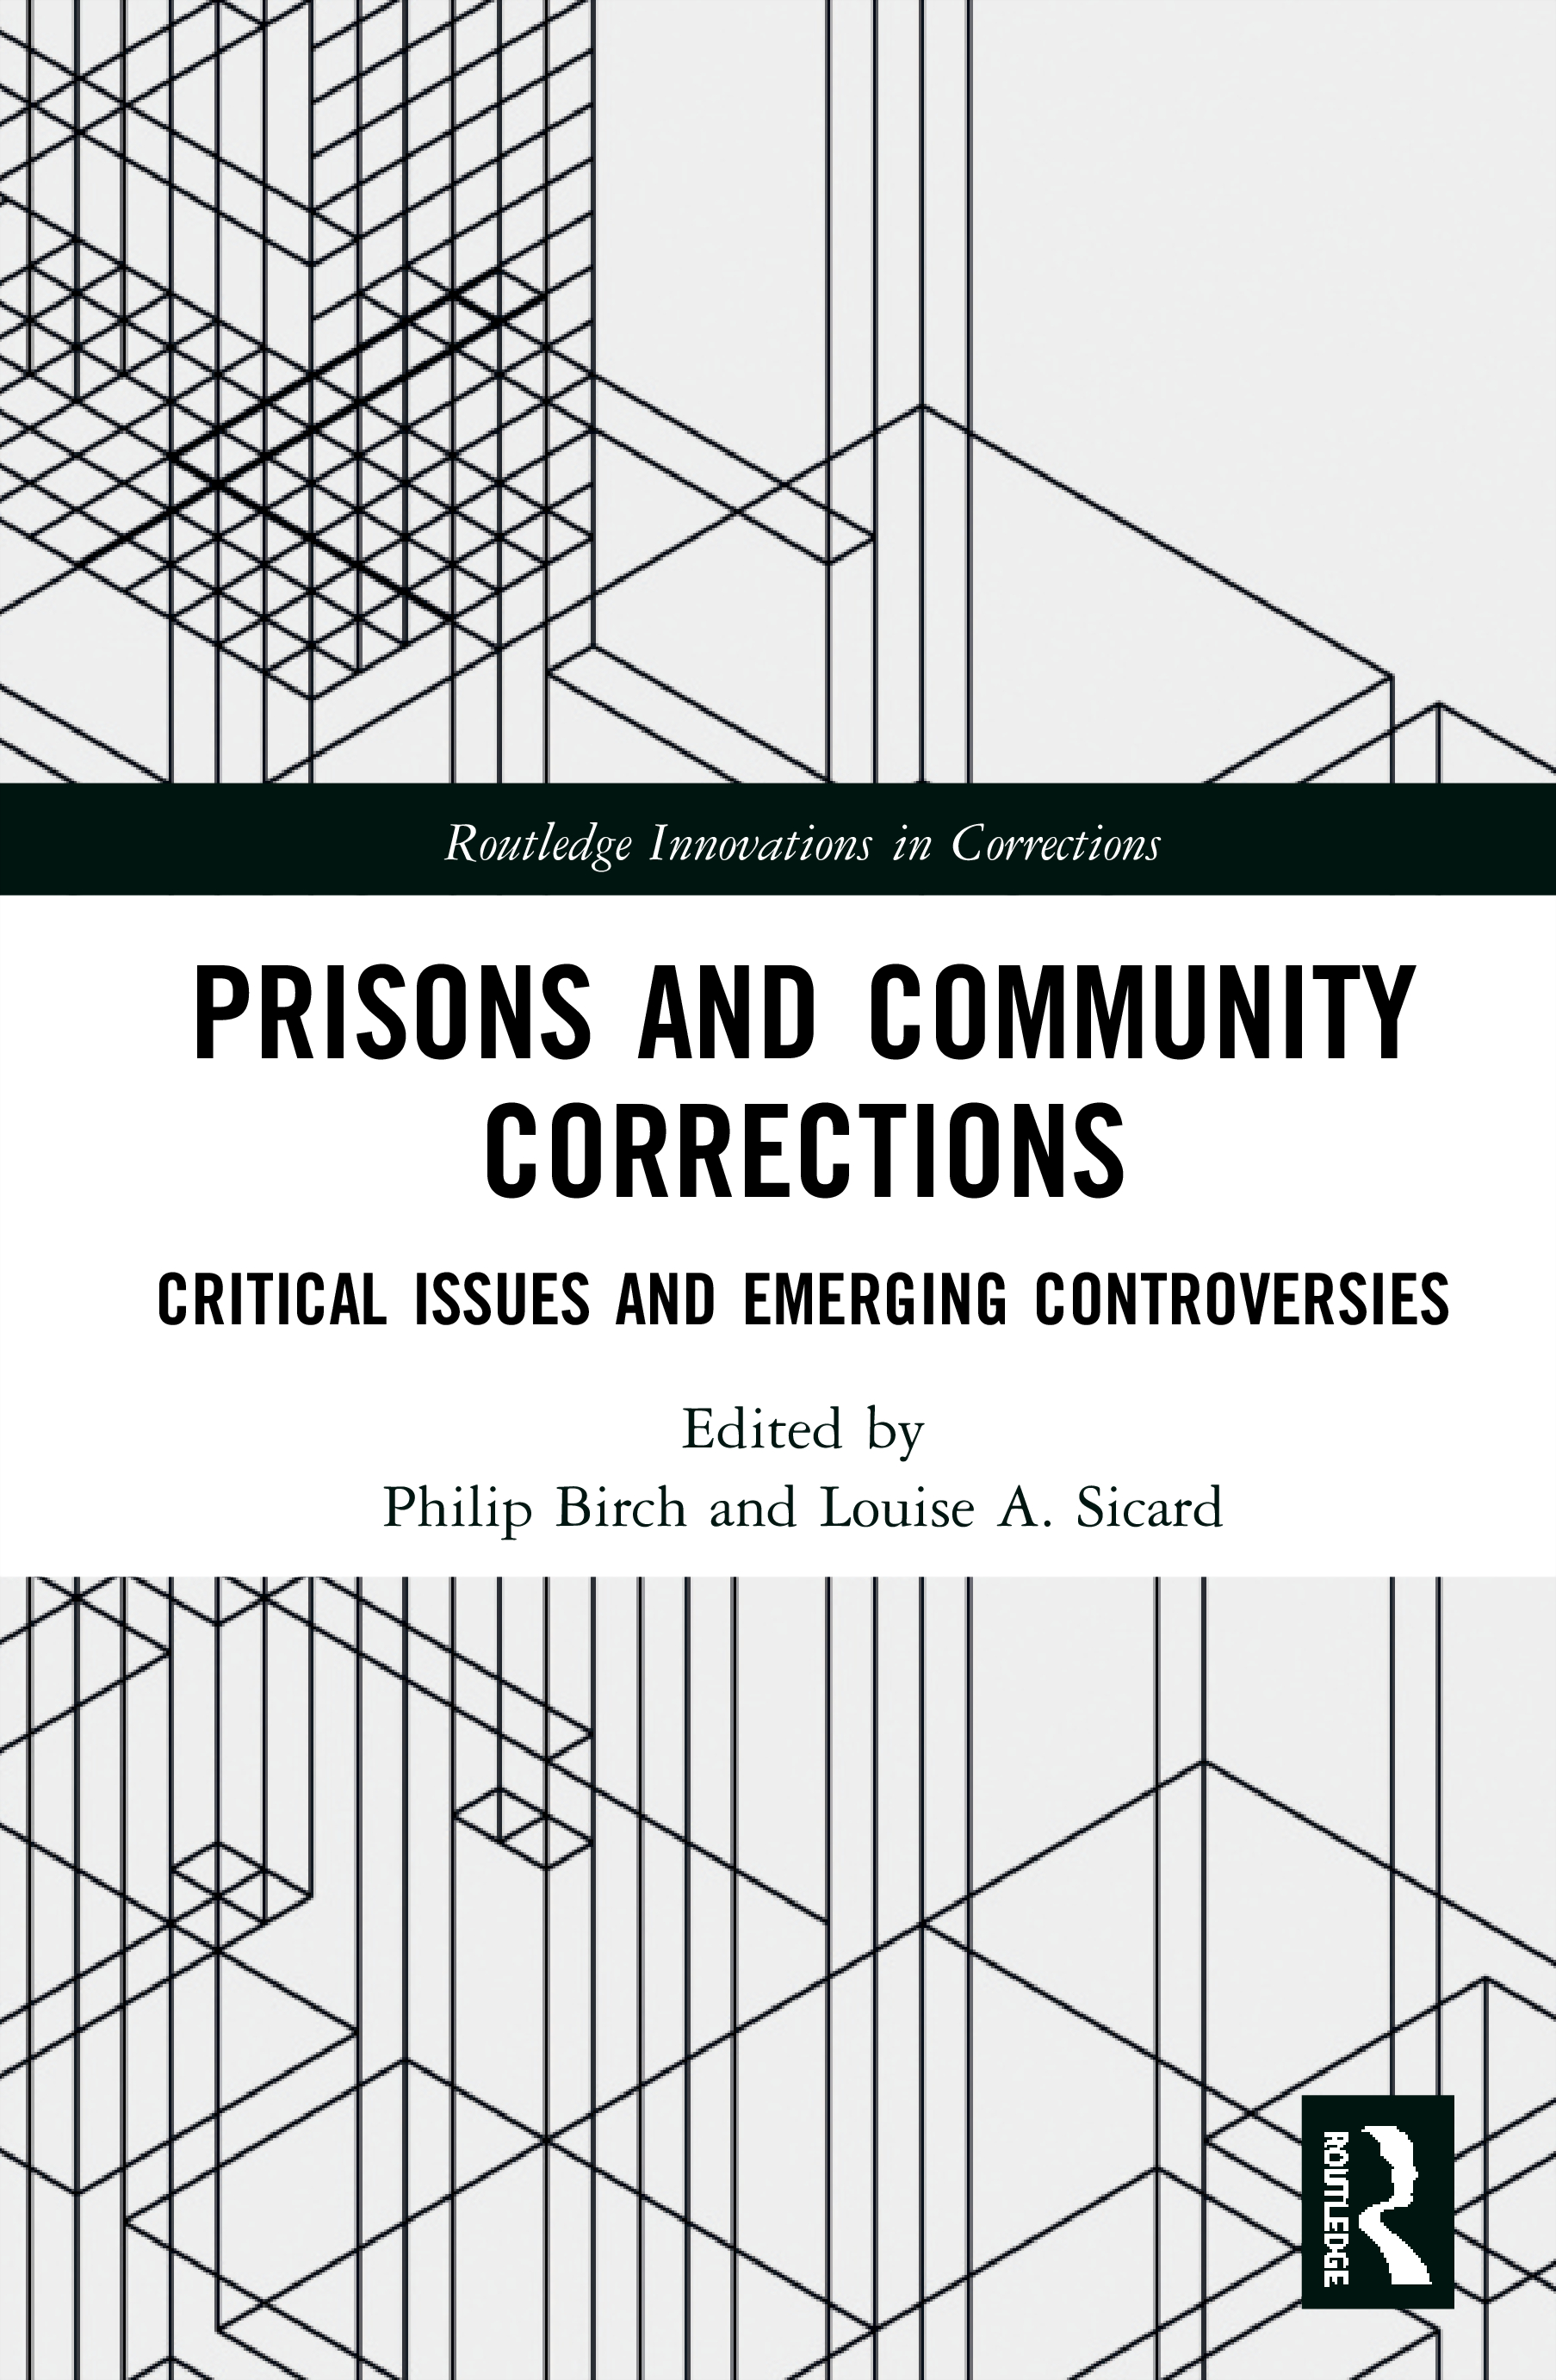 Prisons and Community Corrections: Critical Issues and Emerging Controversies book cover